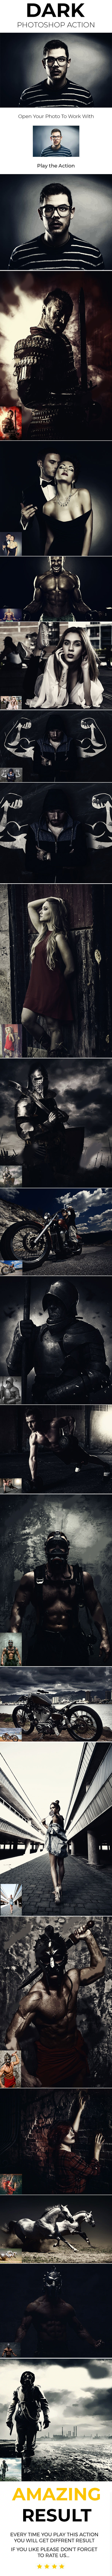 Dark Photoshop Action - Photo Effects Actions